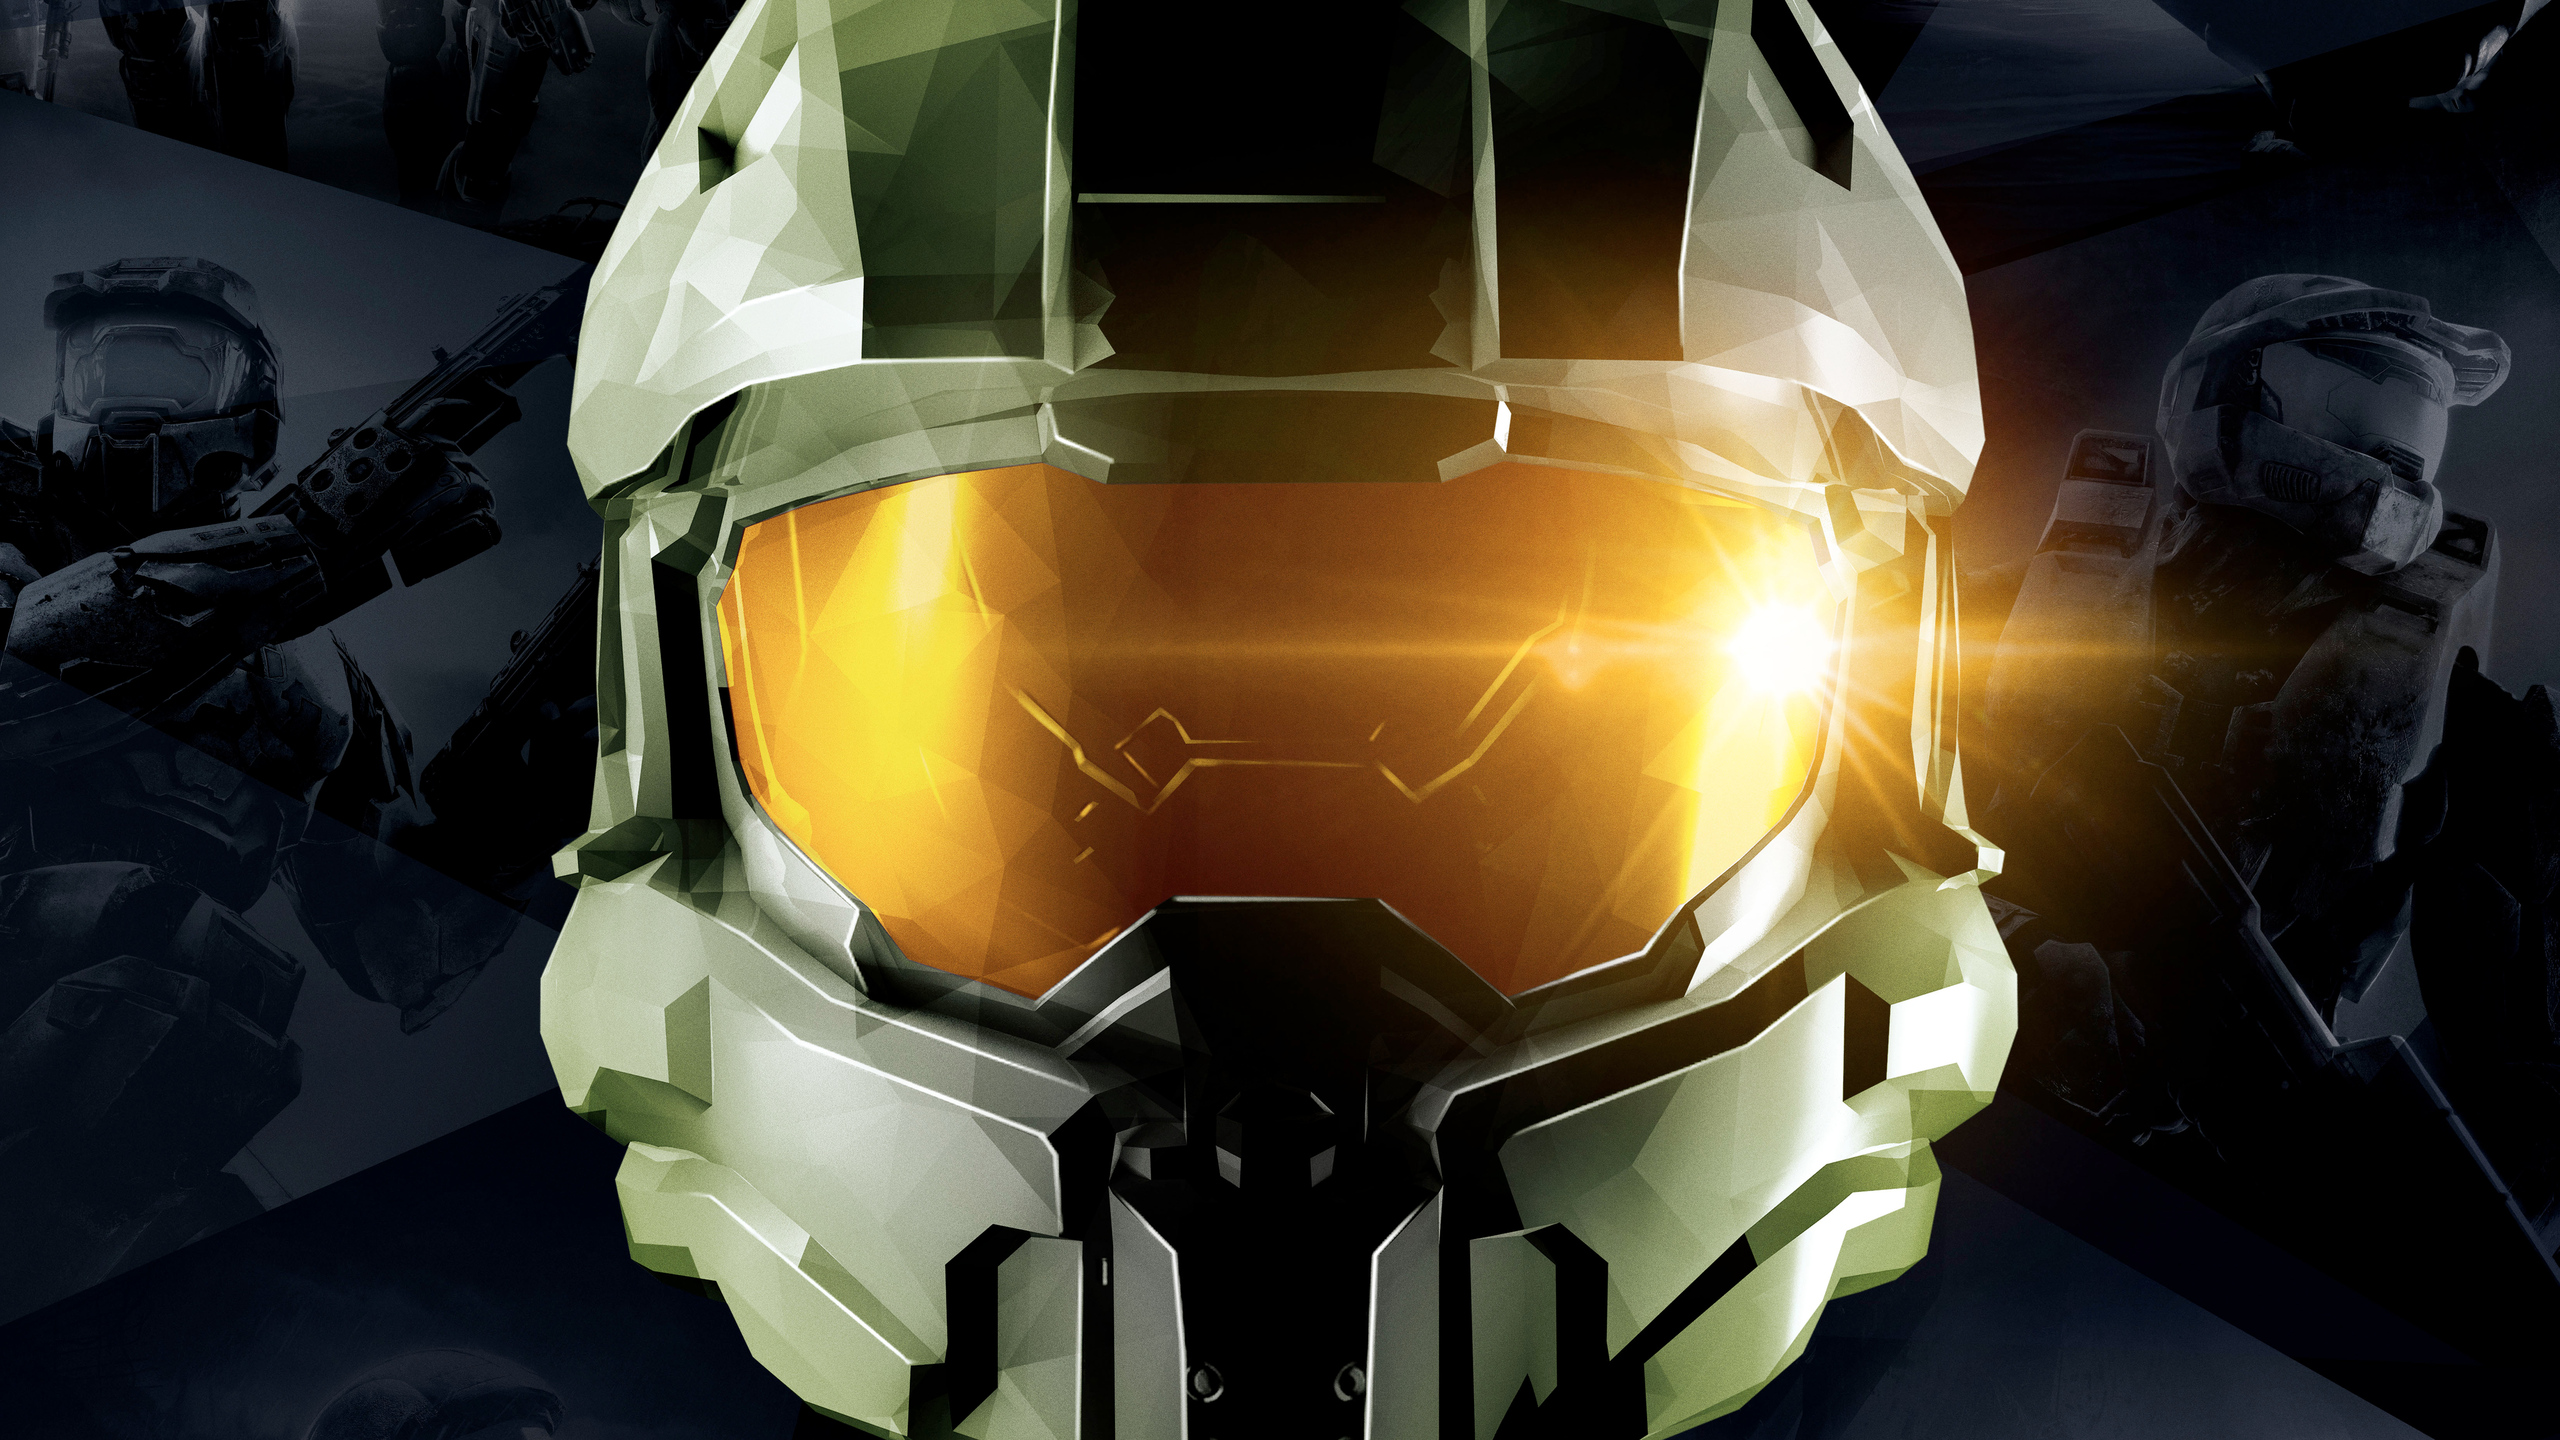 2560x1440 Halo The Master Chief Collection 1440p Resolution Hd 4k